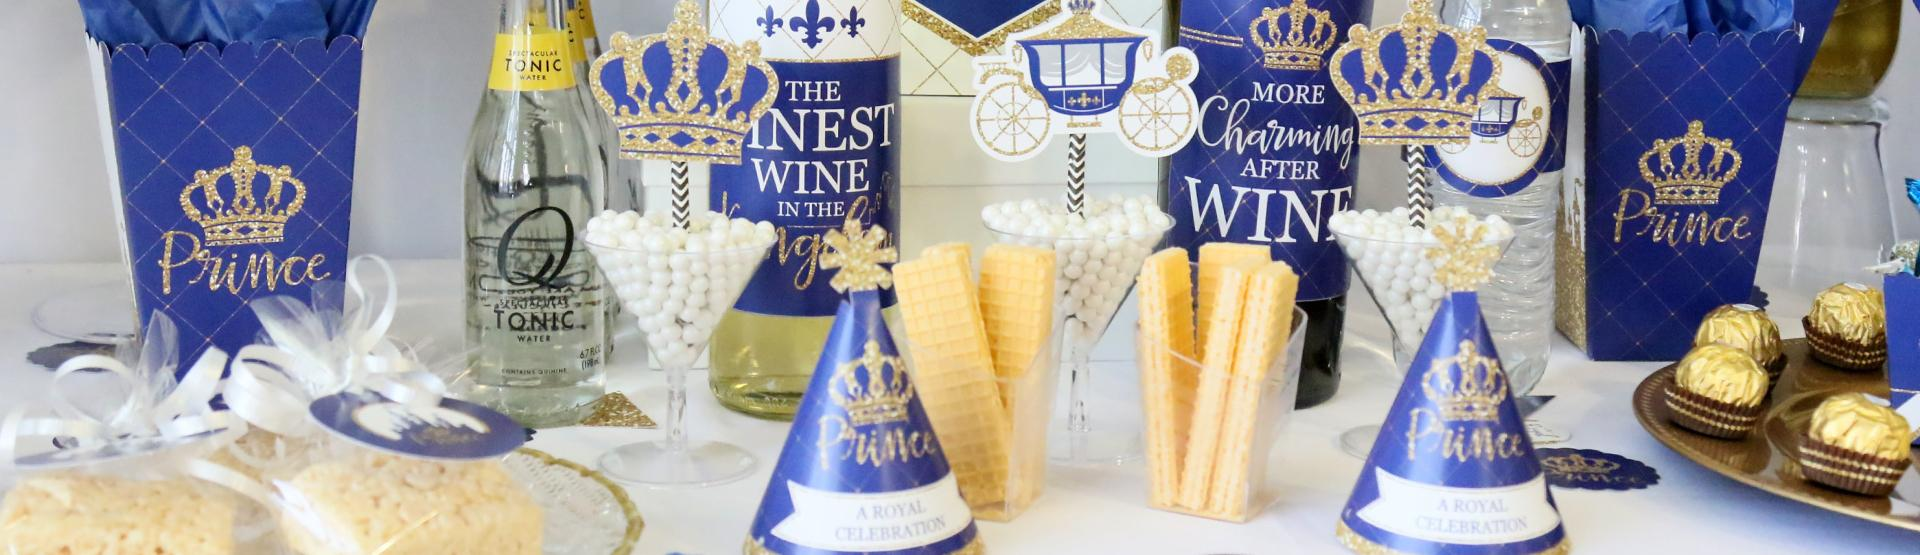 Royal Prince Charming - Party Ideas